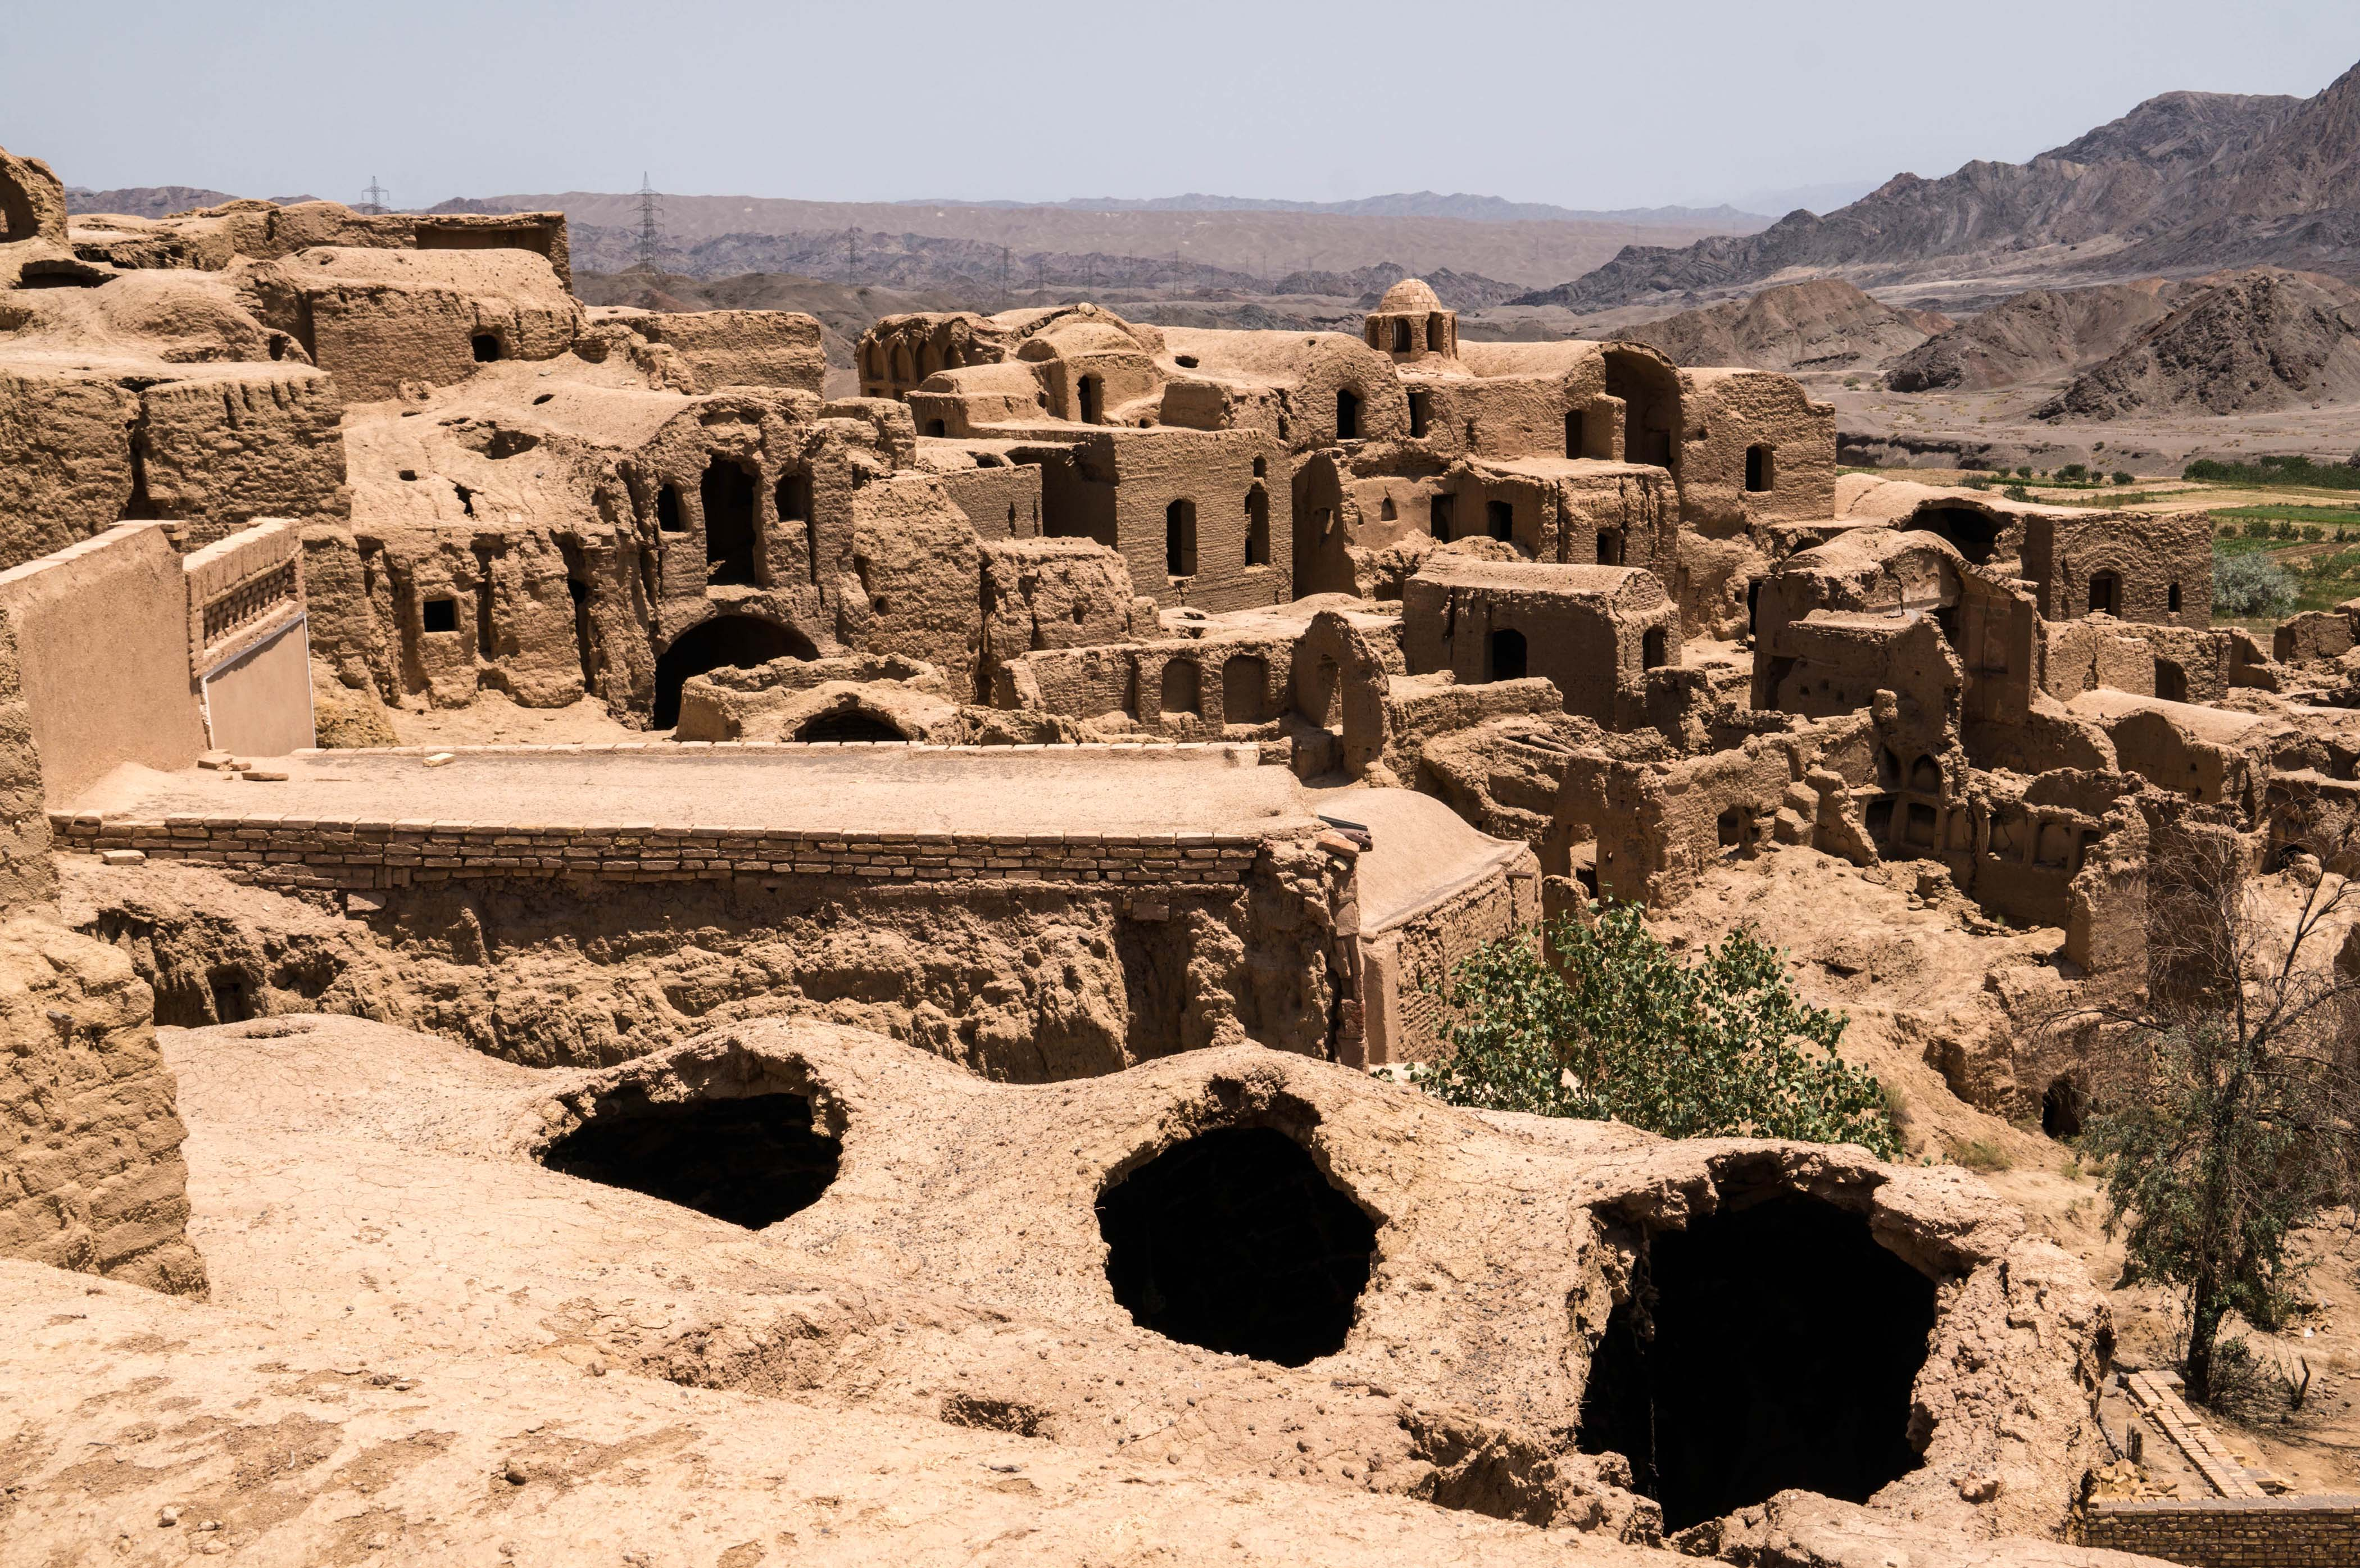 Deserted and crumbling mud-brick village of Kharanaq, Iran